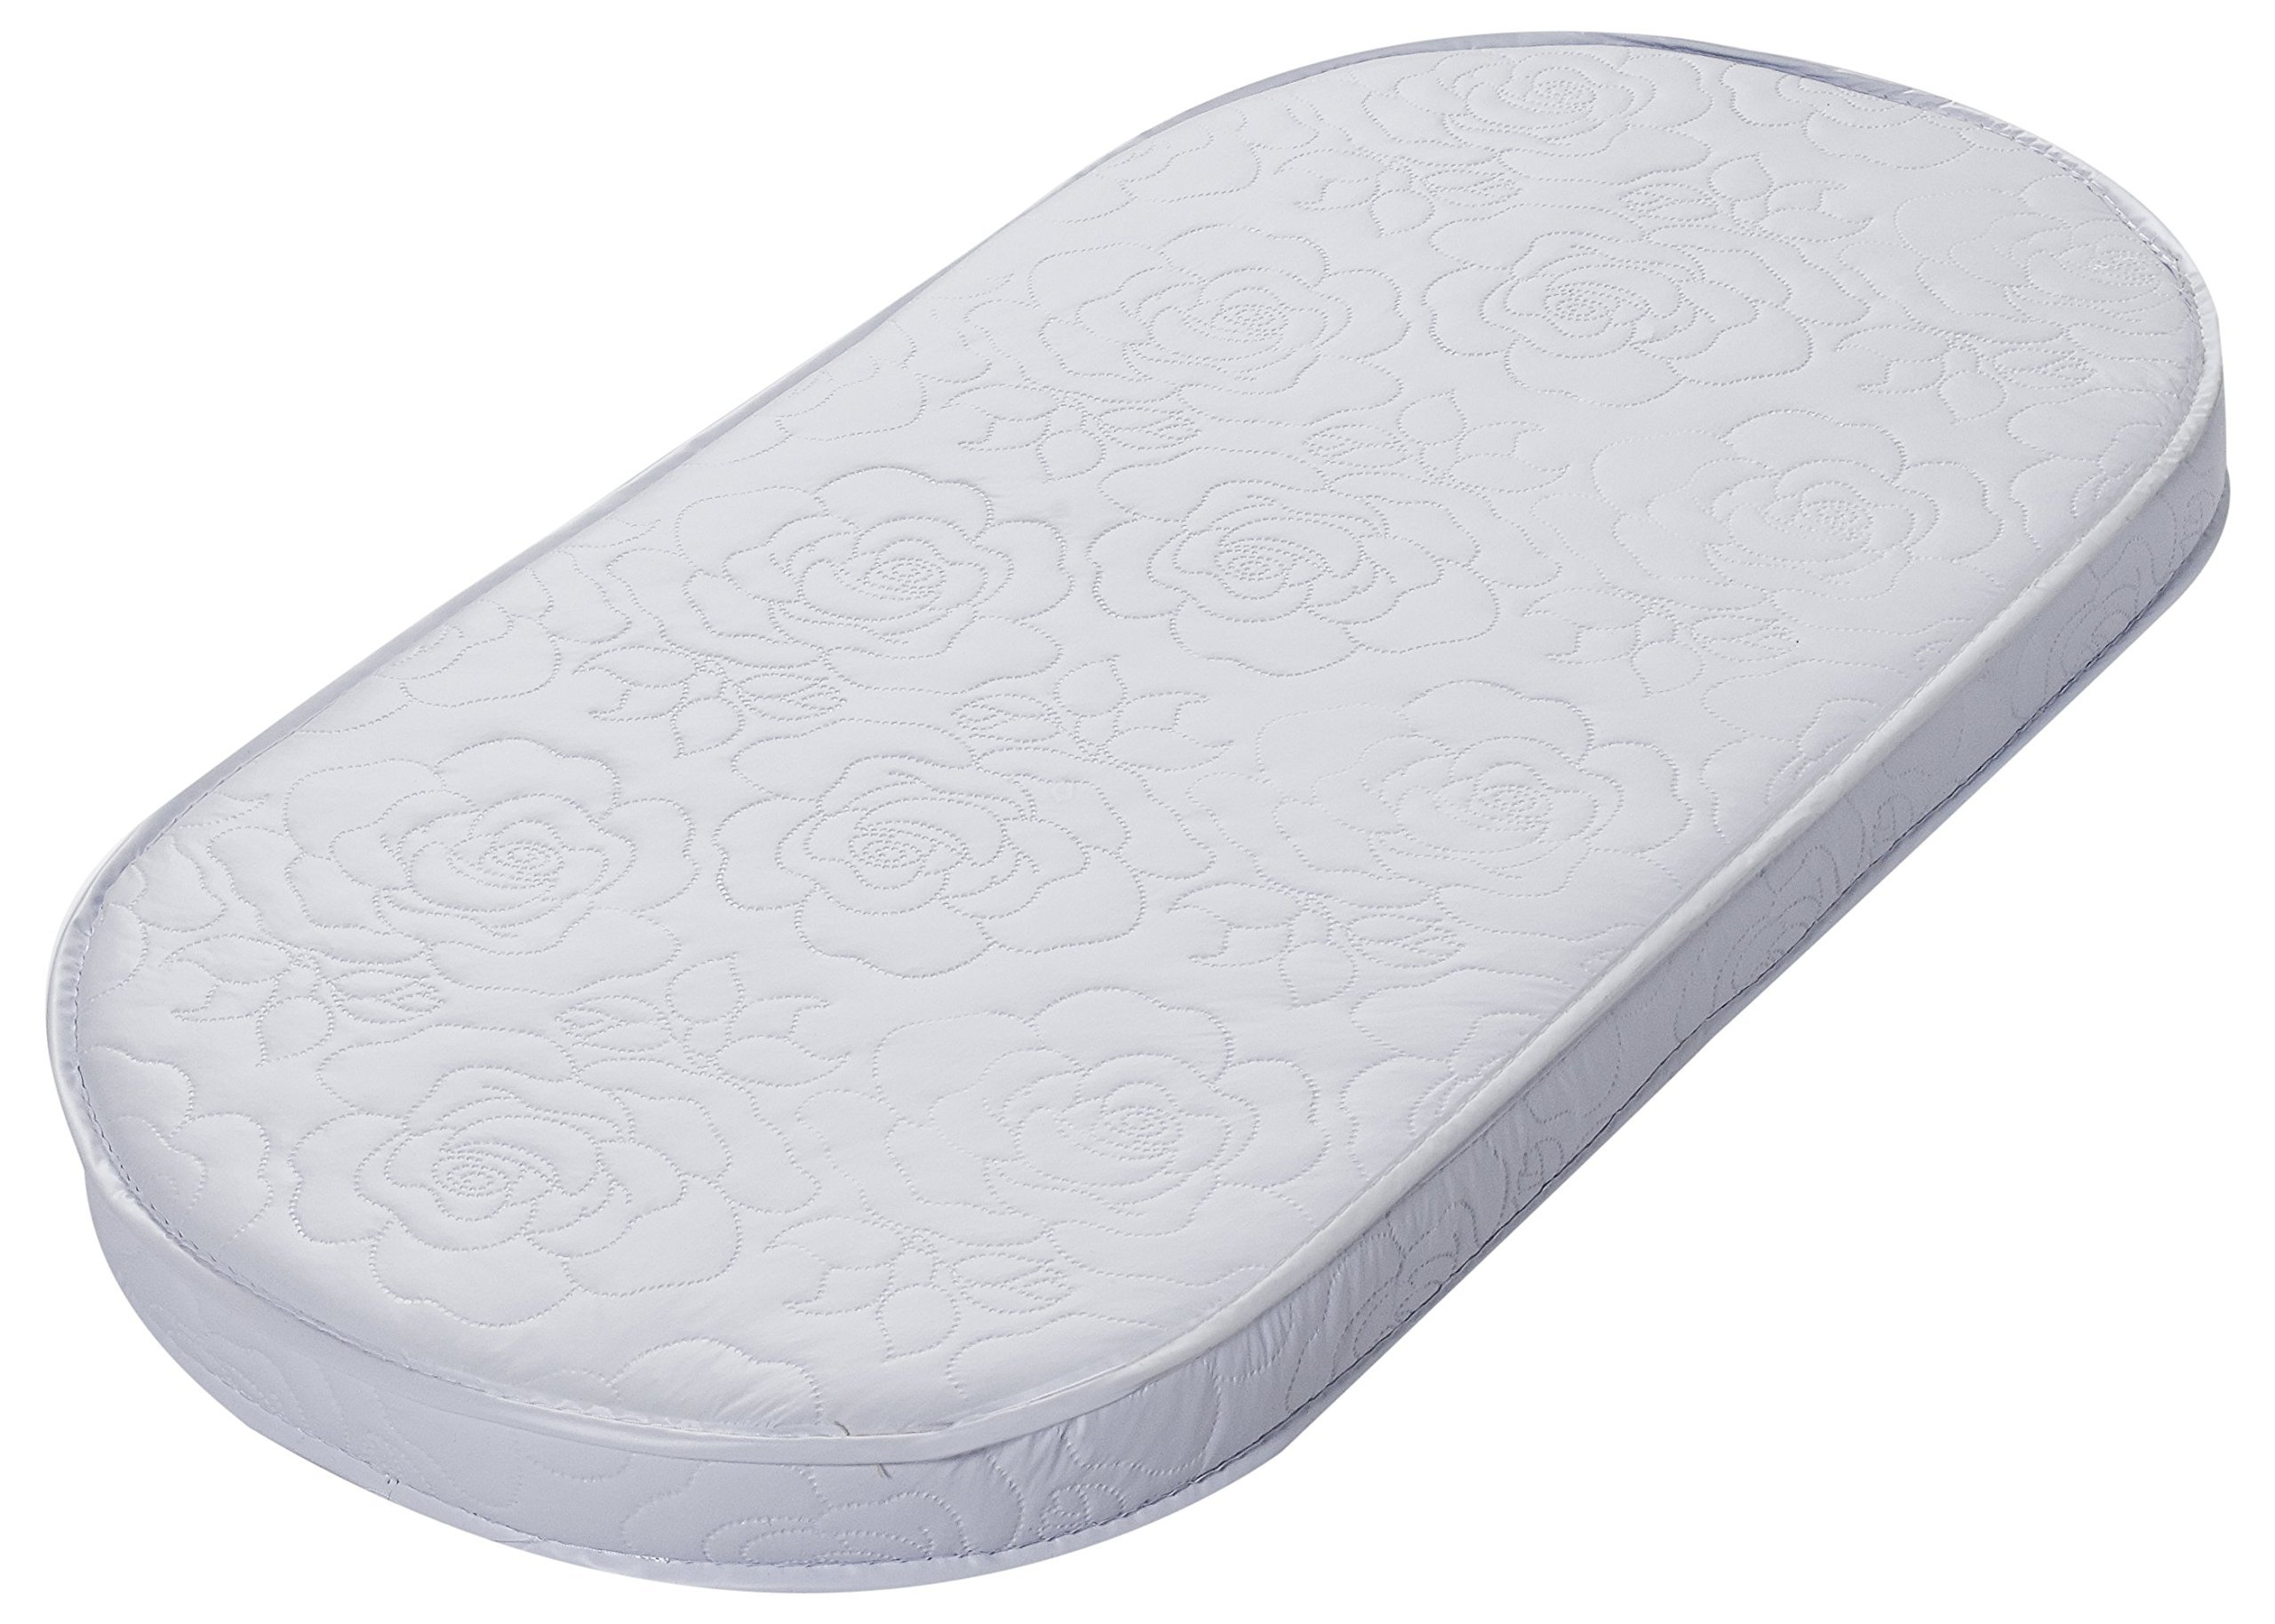 Big Oshi Waterproof Oval Baby Bassinet Mattress - Waterproof Exterior - Thick, Soft, Breathable Foam Interior - Comfy, Padded Design, Also Fits Portable Bassinets - 15'' x 30'' x 2'' by Big Oshi